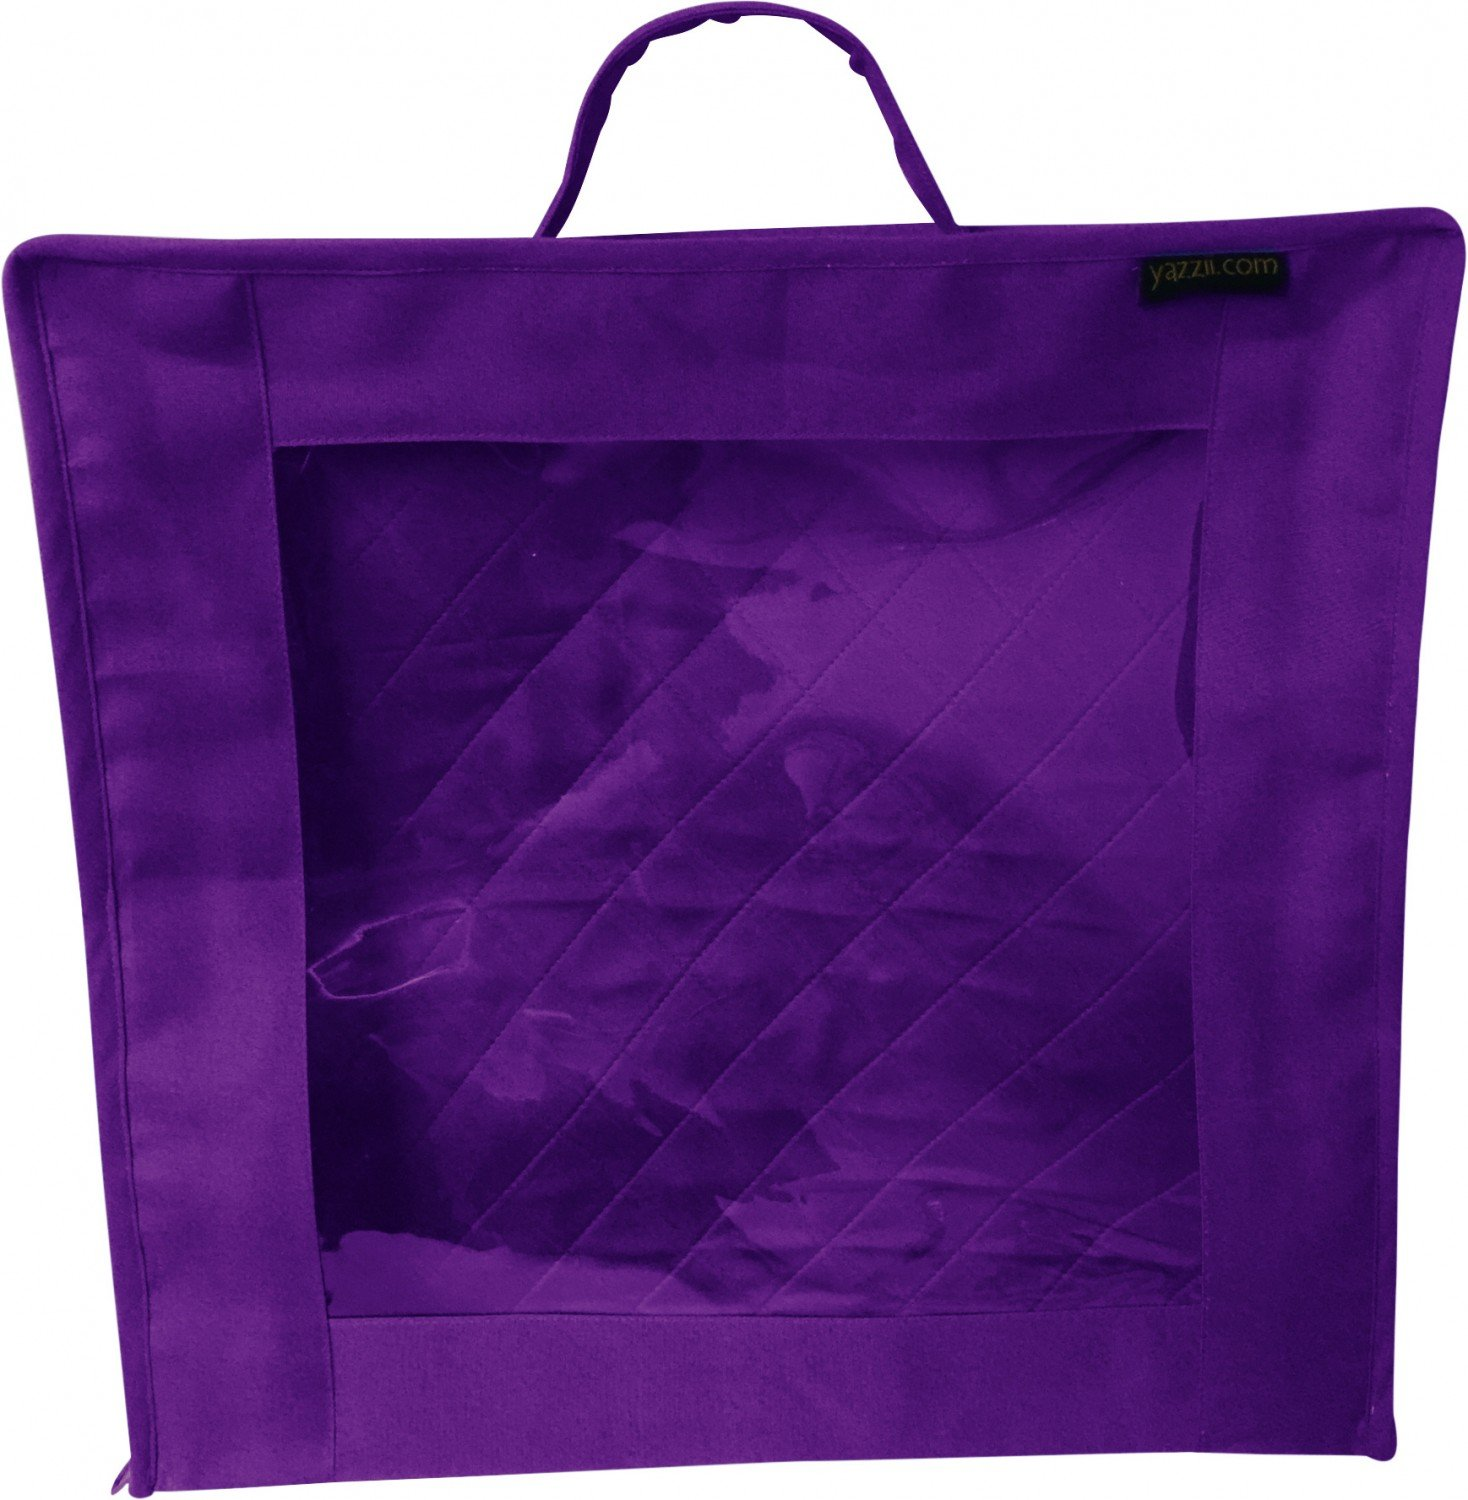 Yazzi Block Showcase Bag Purple